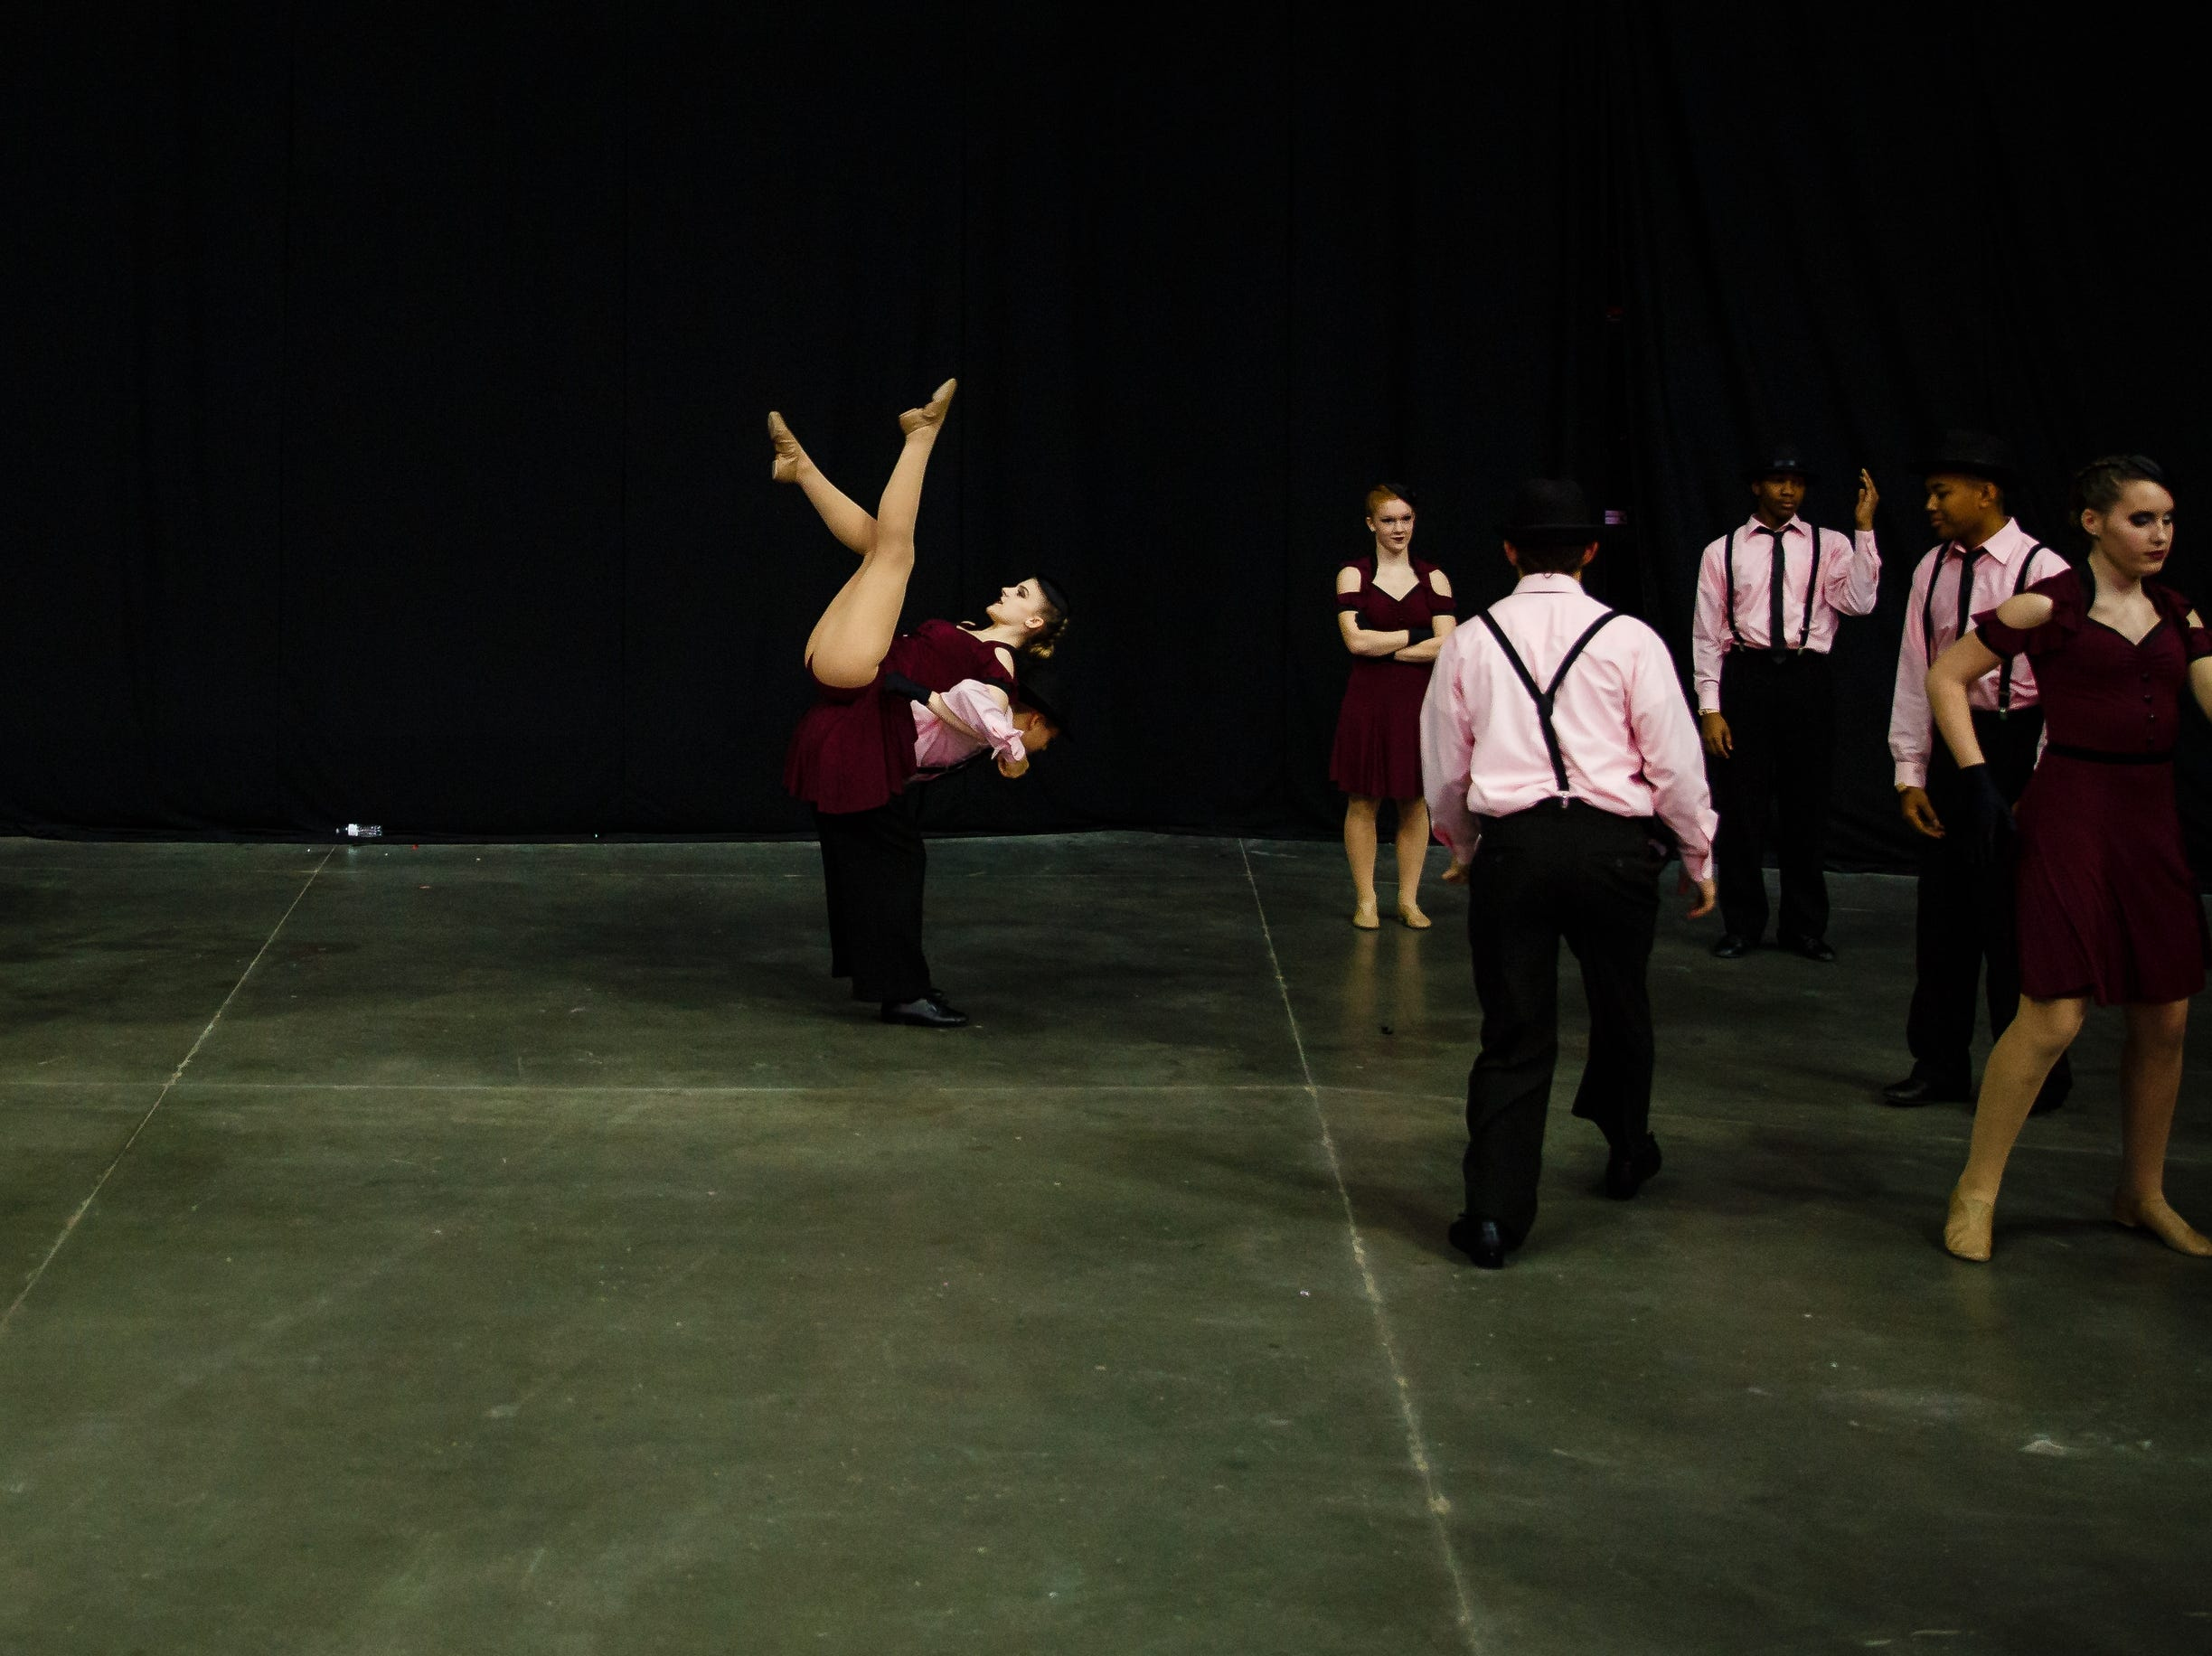 Students from Davenport Central warm up before the Iowa Dance State Championships at Wells Fargo Arena on Friday, Nov. 30, 2018, in Des Moines.